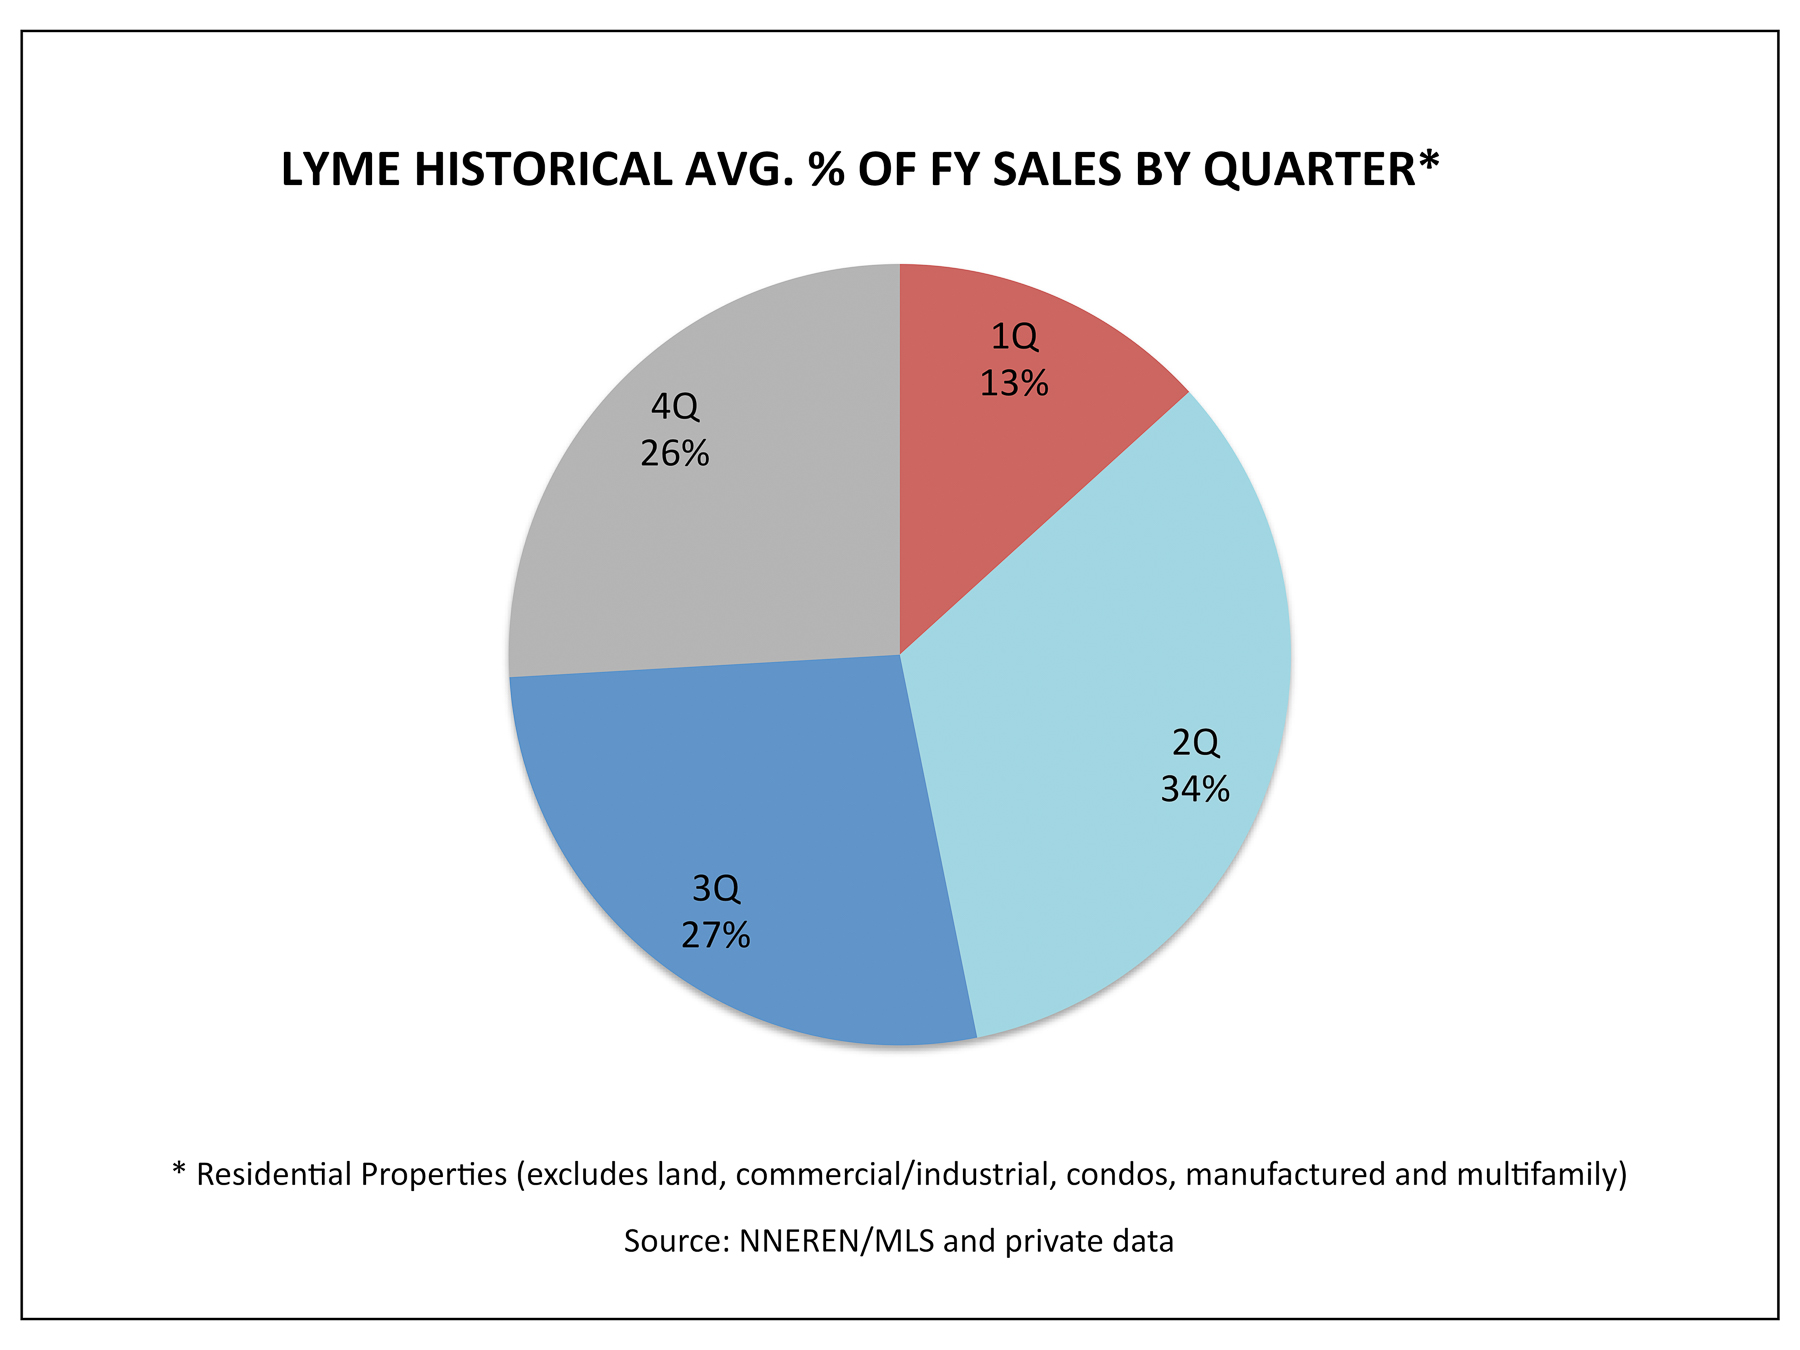 Lyme NH Real Estate - 1Q Historical Avg % Homes Sold by Quarter